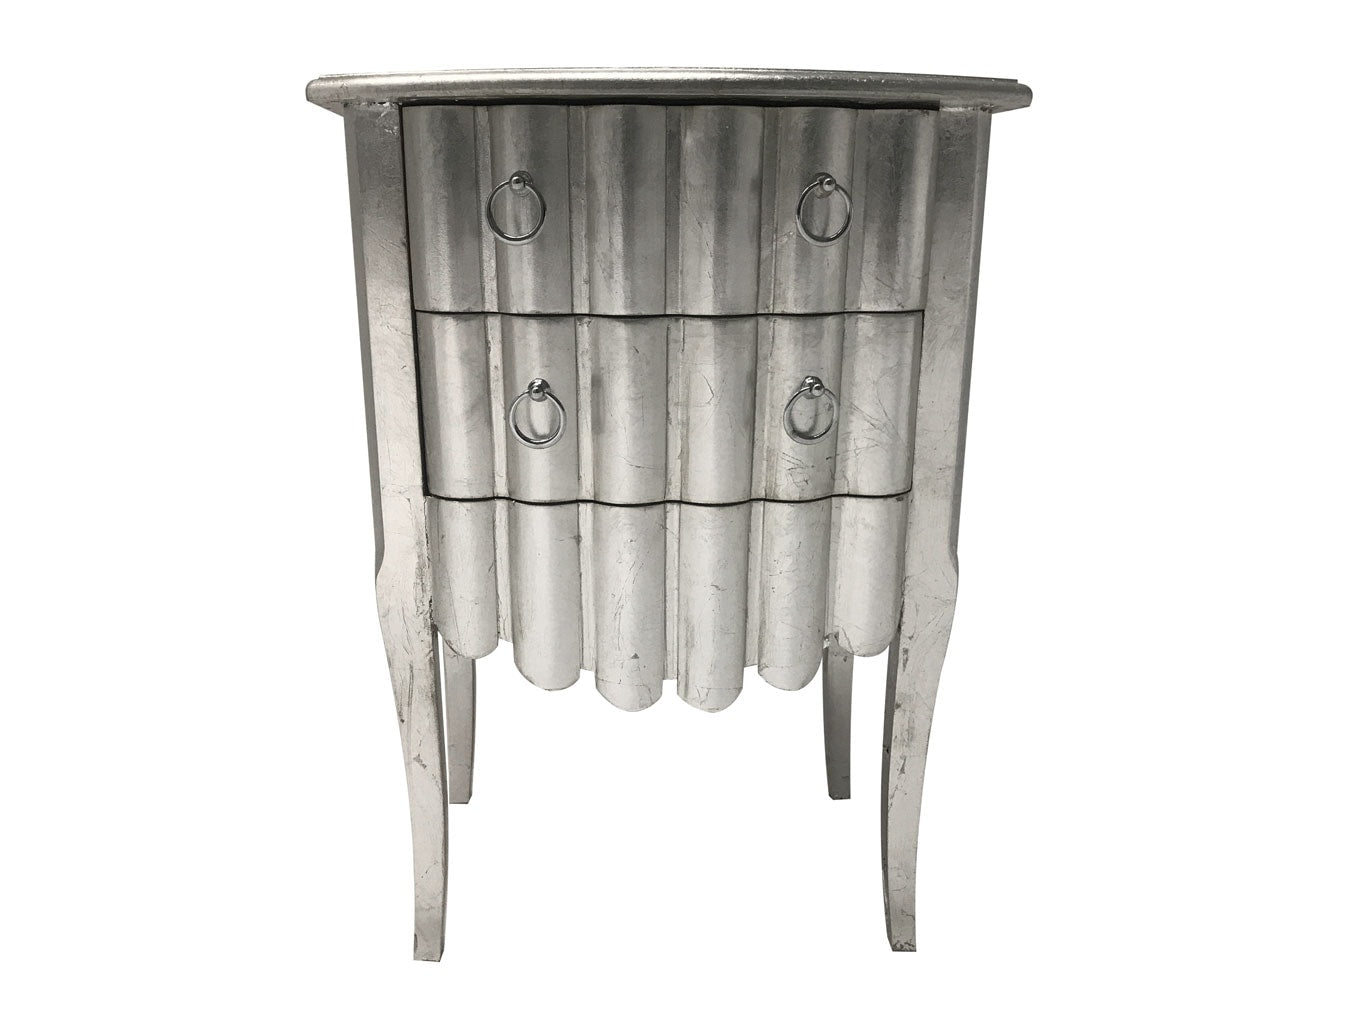 Silver leaf bedside chest with 2 drawers, silver leaf motif, metal handles wood ant silver